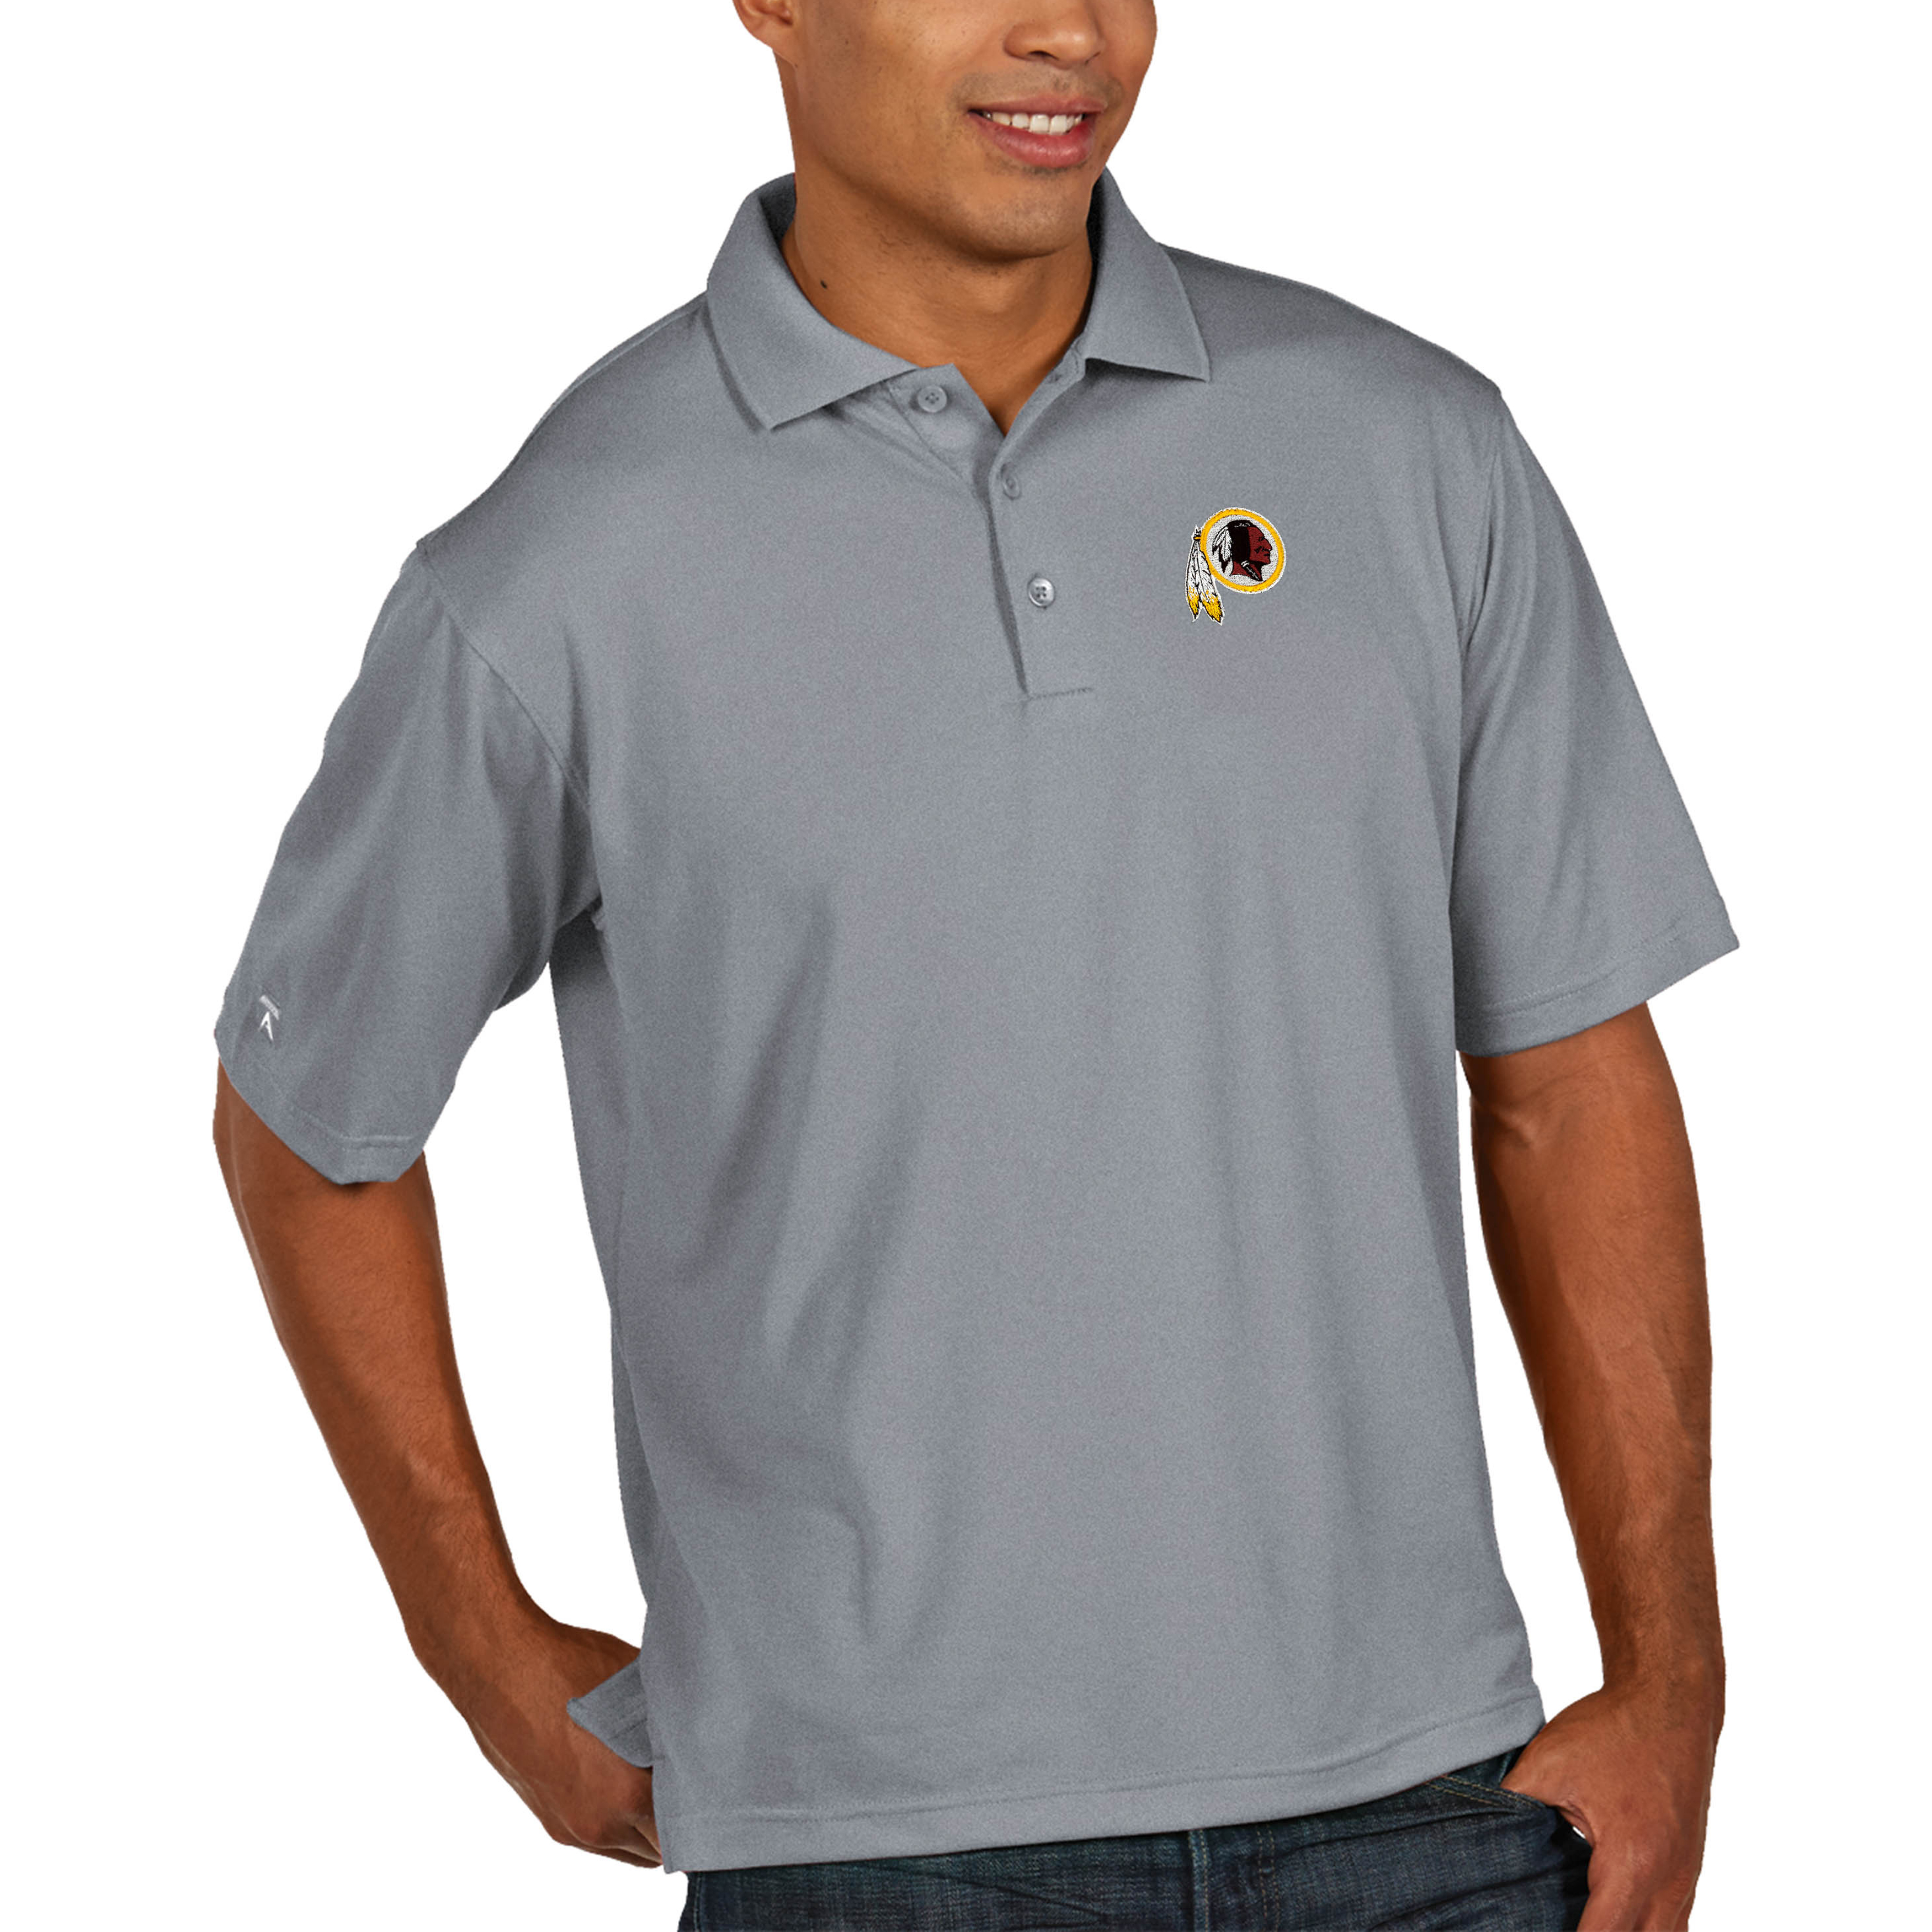 Washington Redskins Antigua Pique Xtra Lite Big & Tall Polo - Heathered Gray